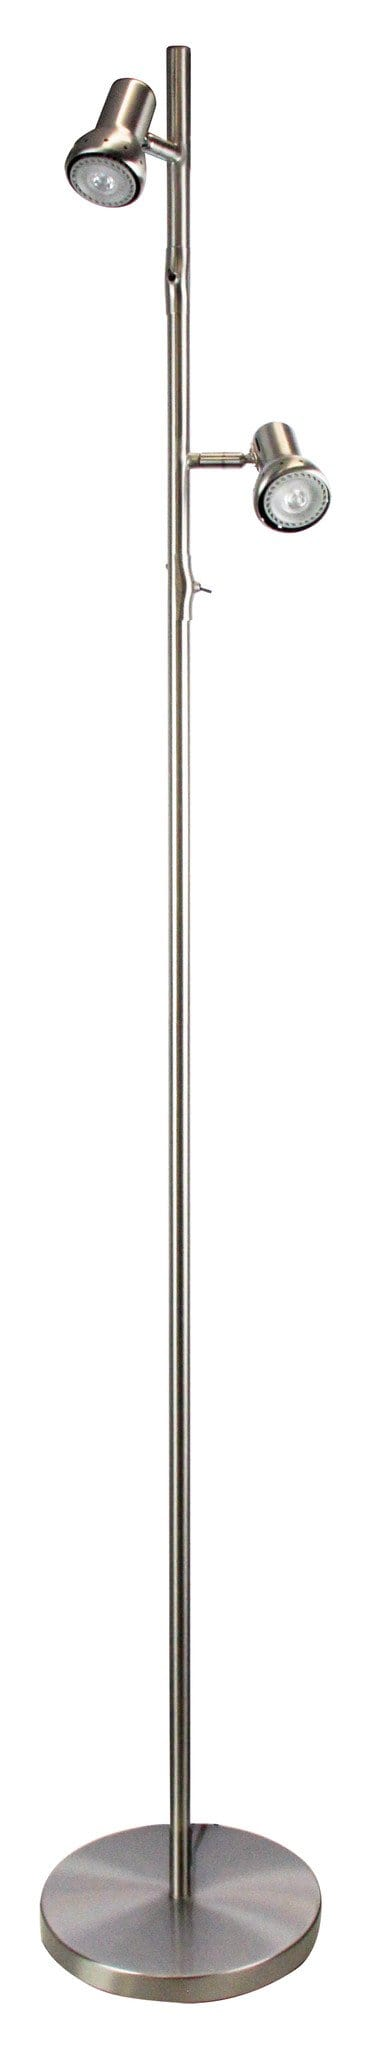 Daxam Led Twin Floor Lamp Brushed Chrome